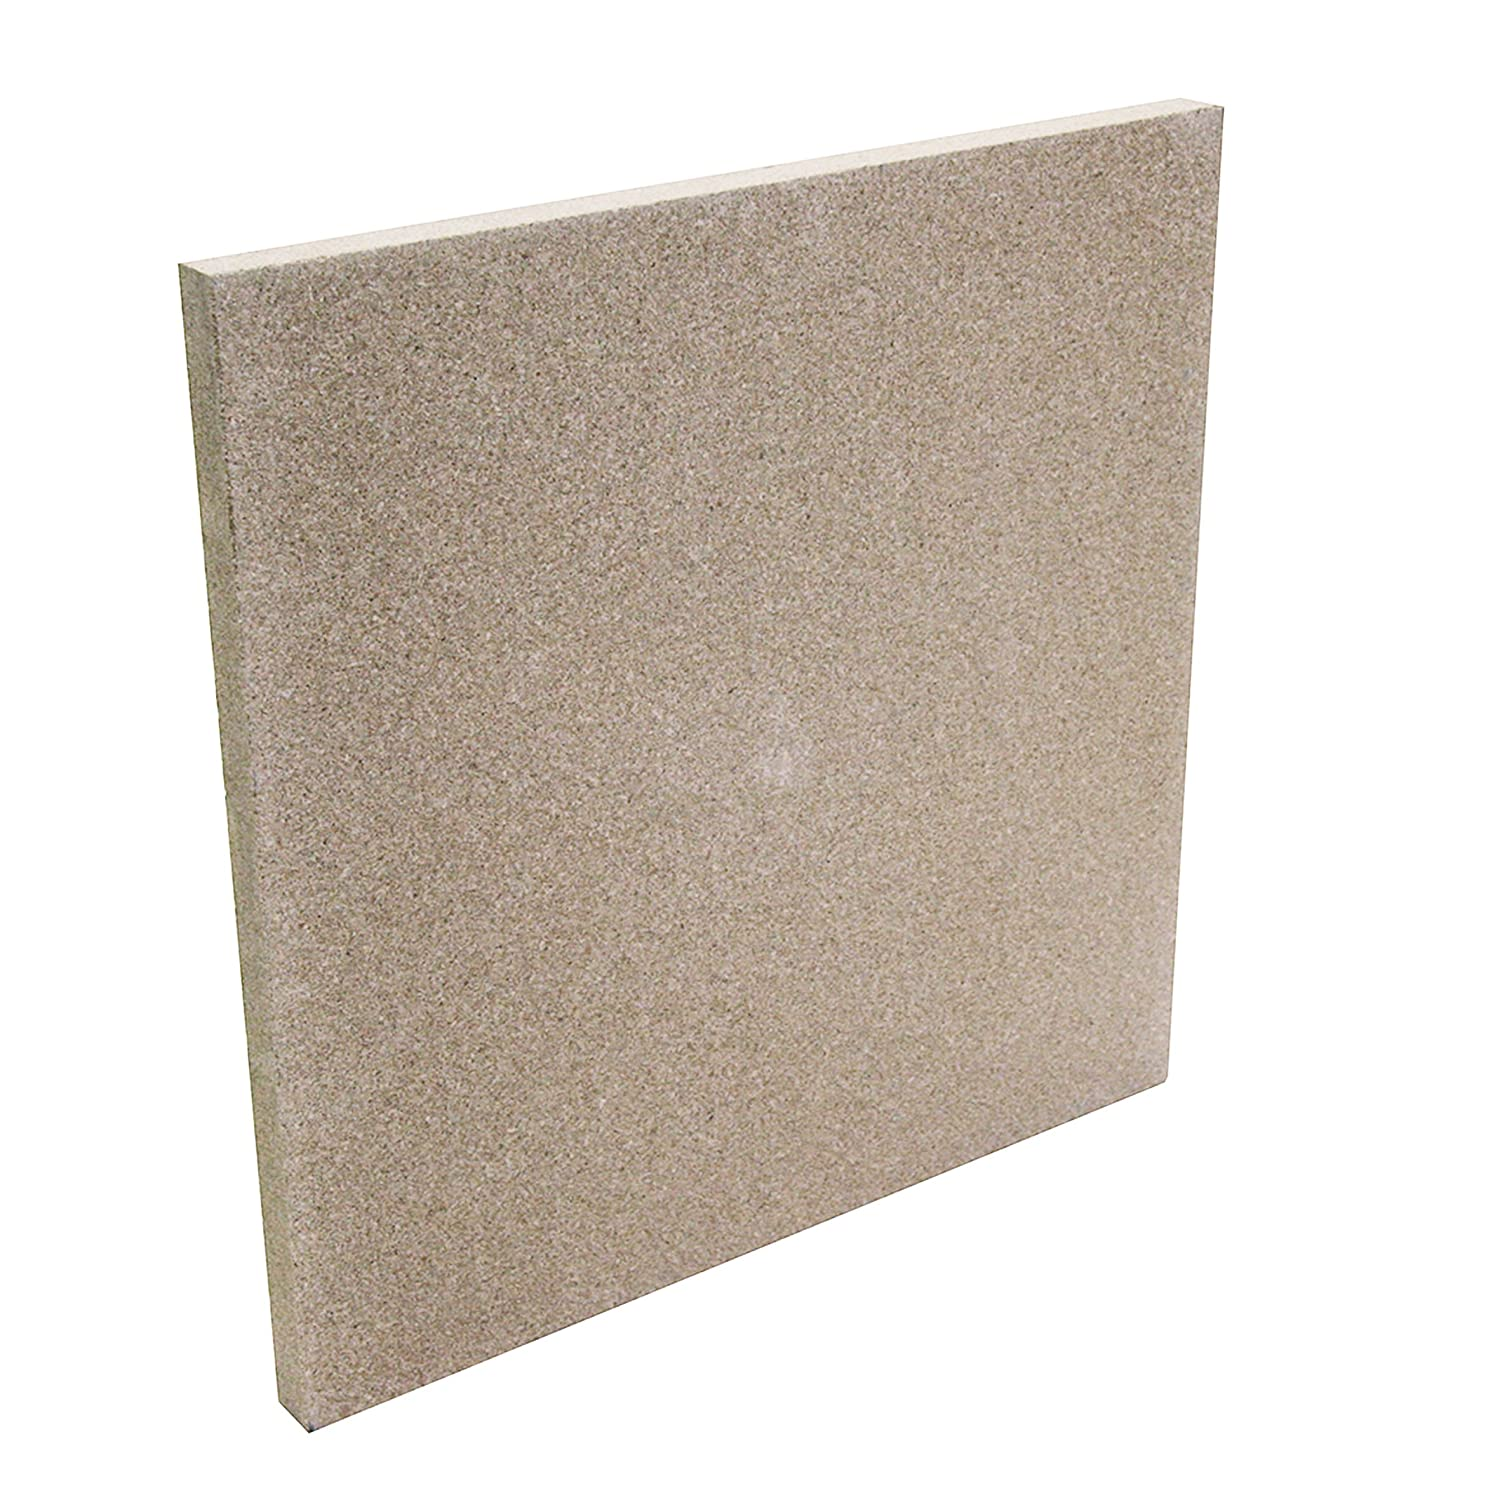 Kamino-Flam Vermiculite Fire Board, Incombustible Stove Plate made of Natural Clay, Chamotte Substitute, No Harmful Substances and Heavy Metals, Temperature-resistant up to 1,100°C, approx. 50x50x3cm Kamino - Flam 333304